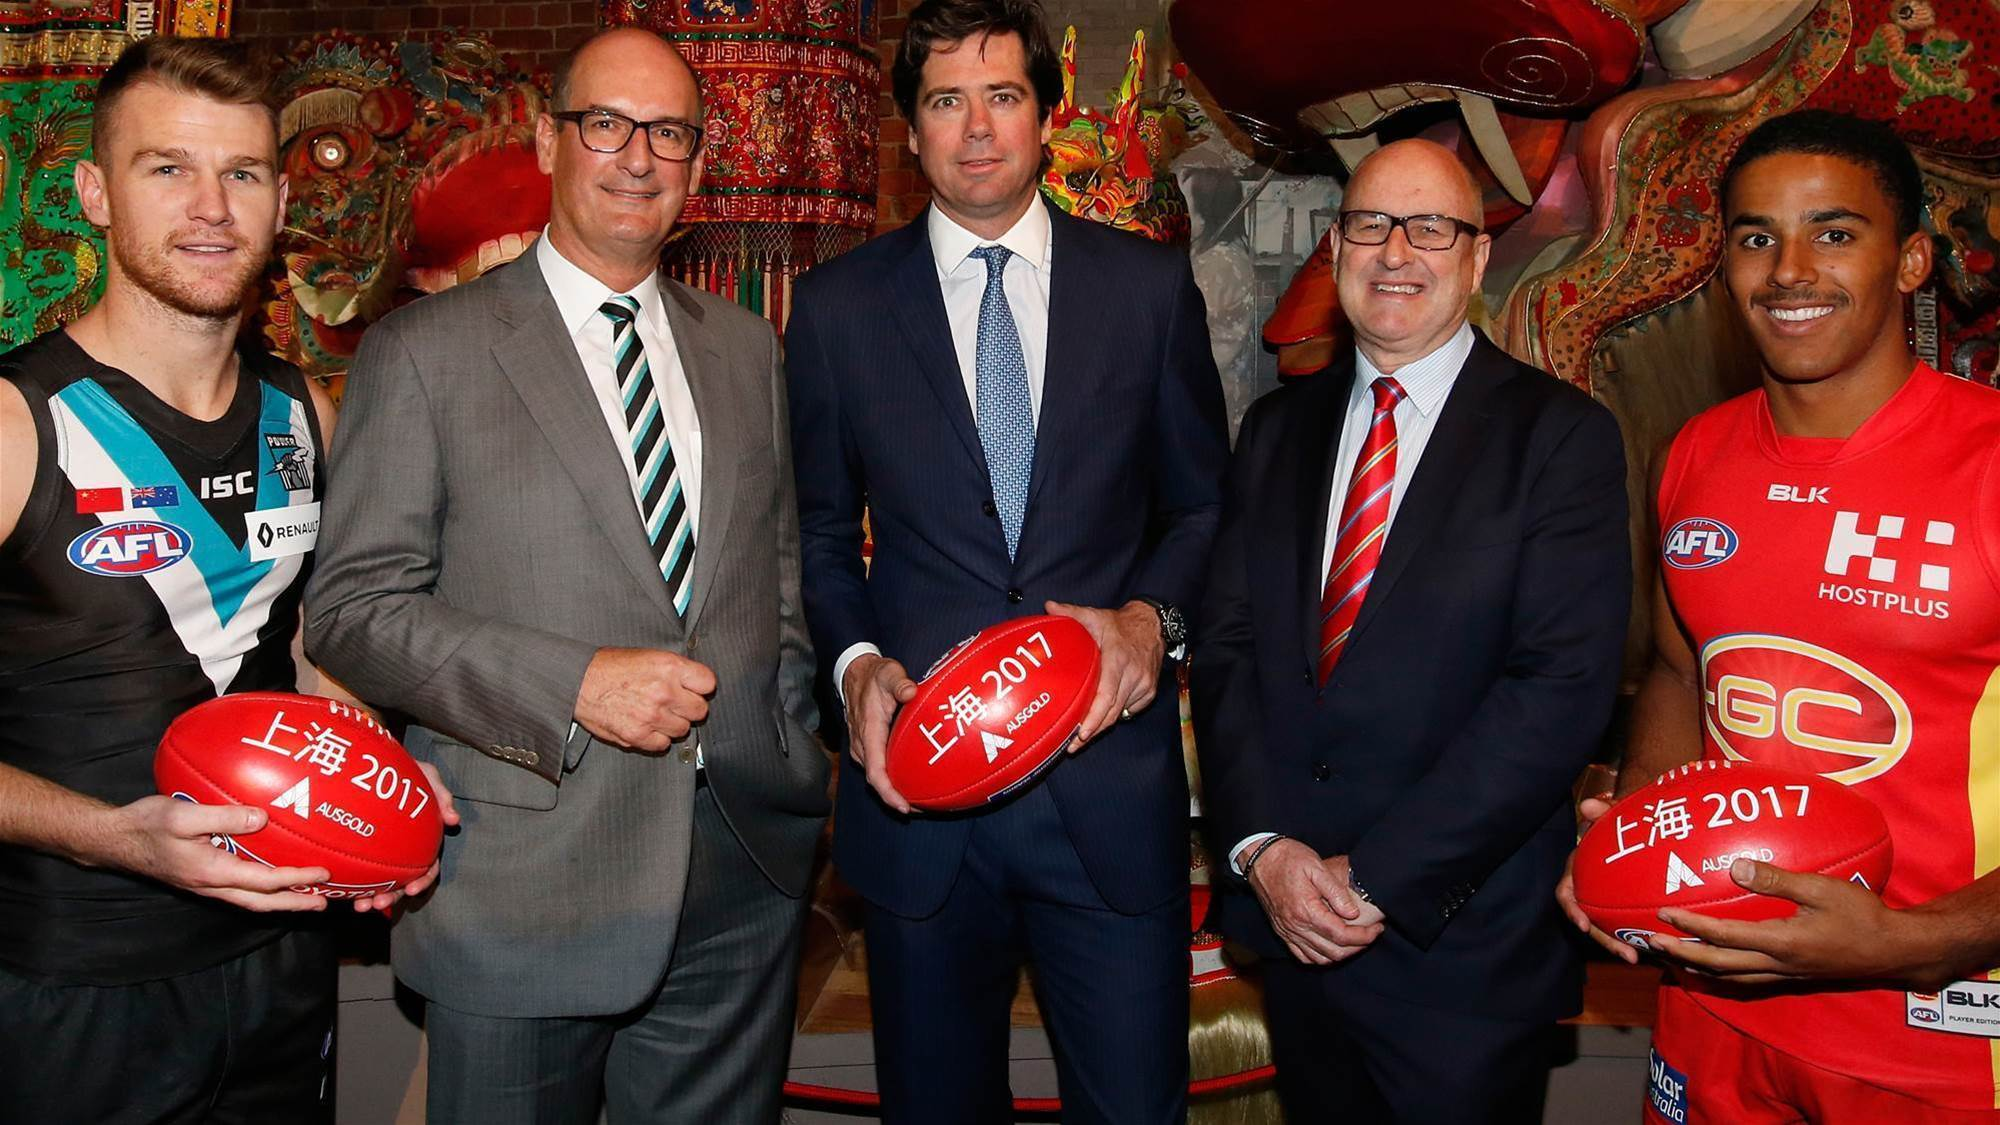 China AFL match sells out, may go ahead